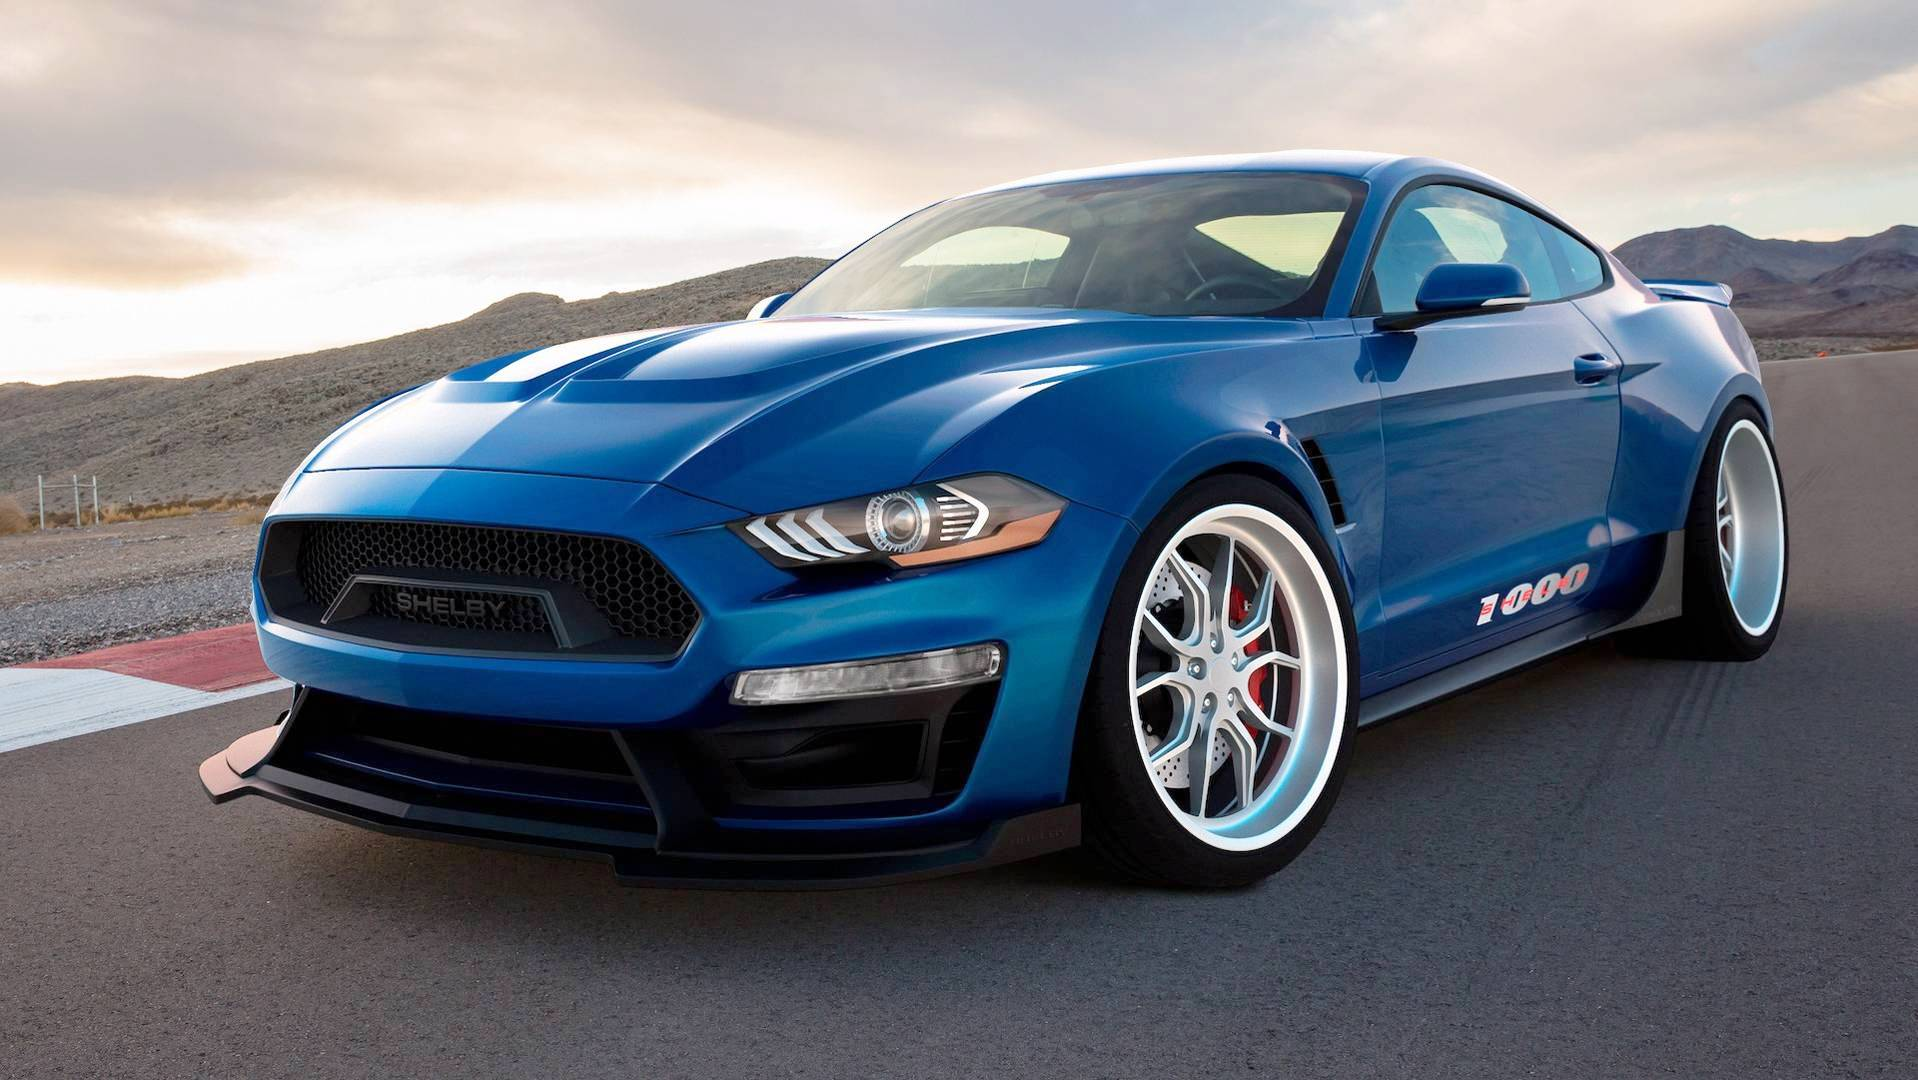 2018 Roush Mustang Sema >> 100+ [ 2015 2017 Mustang Concept I ] | Ford Mustang Gt500 Eleanor 2015 Squir,Roush 421870 ...